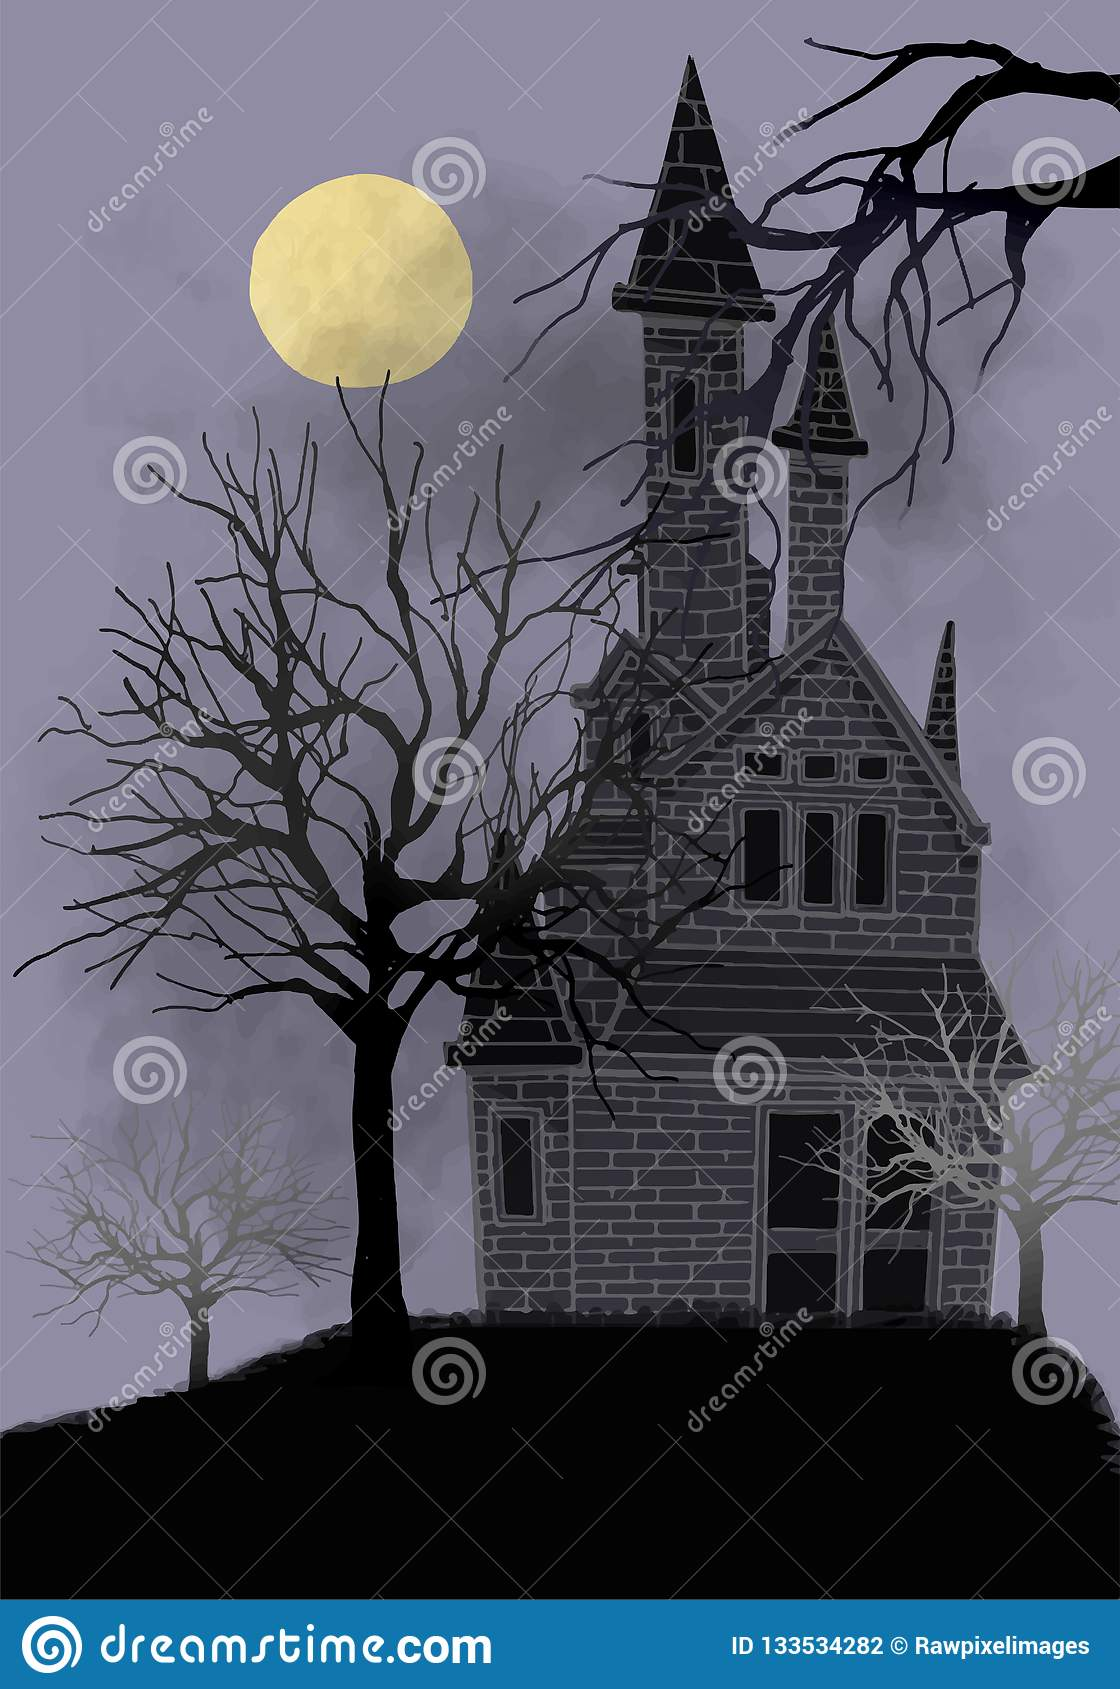 Old abandoned house illustration vector